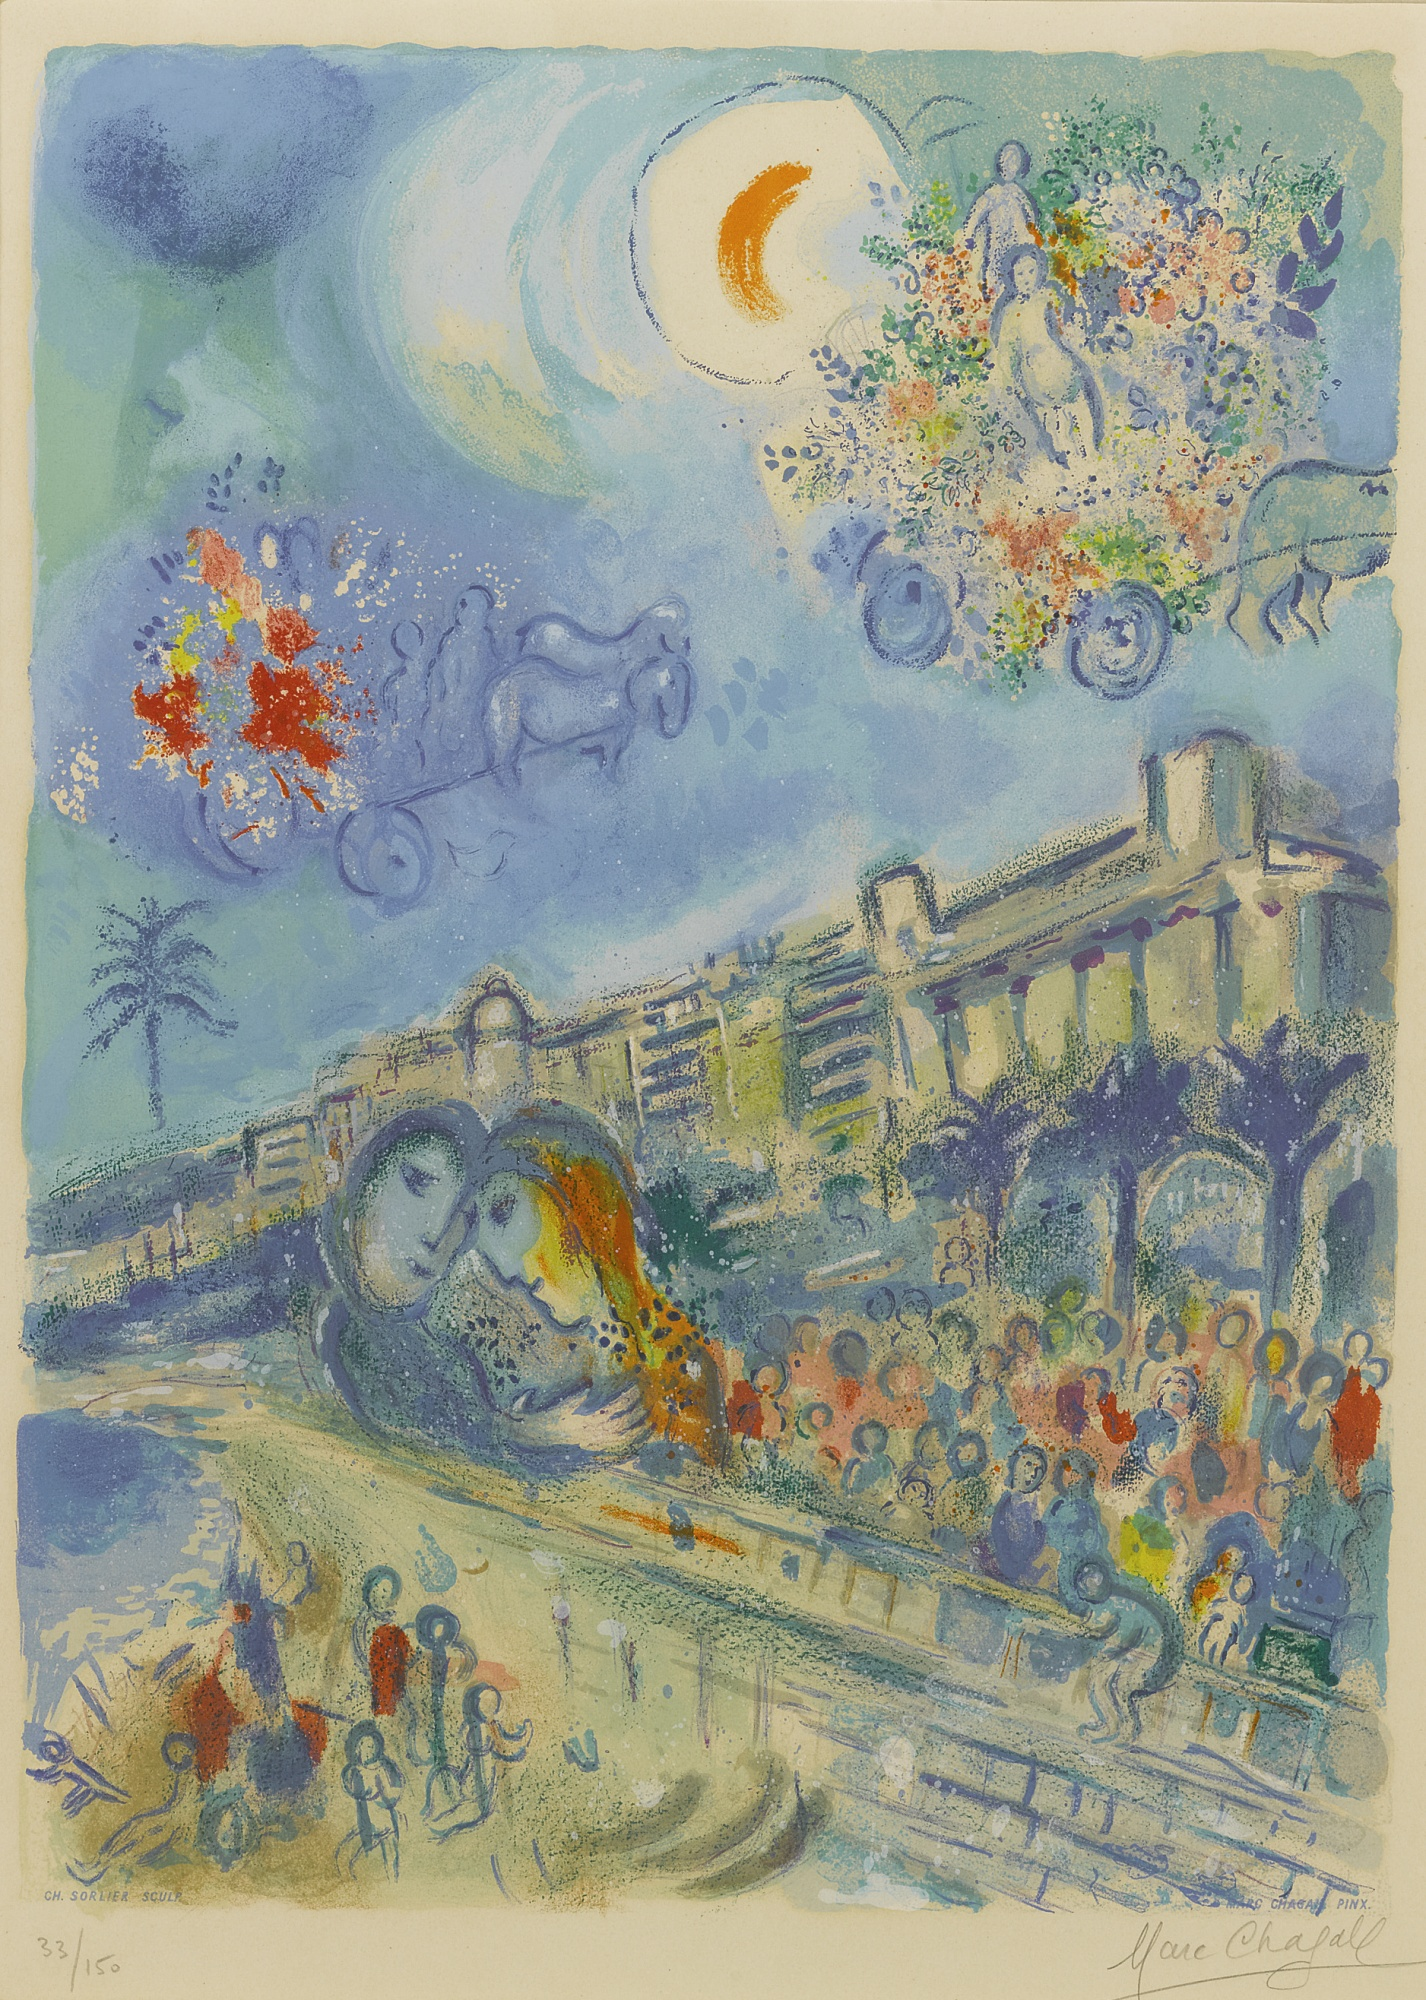 Charles Sorlier-Marc Chagall-Charles Sorlier After Marc Chagall - Bataille De Fleurs (M. Cs 33)-1967